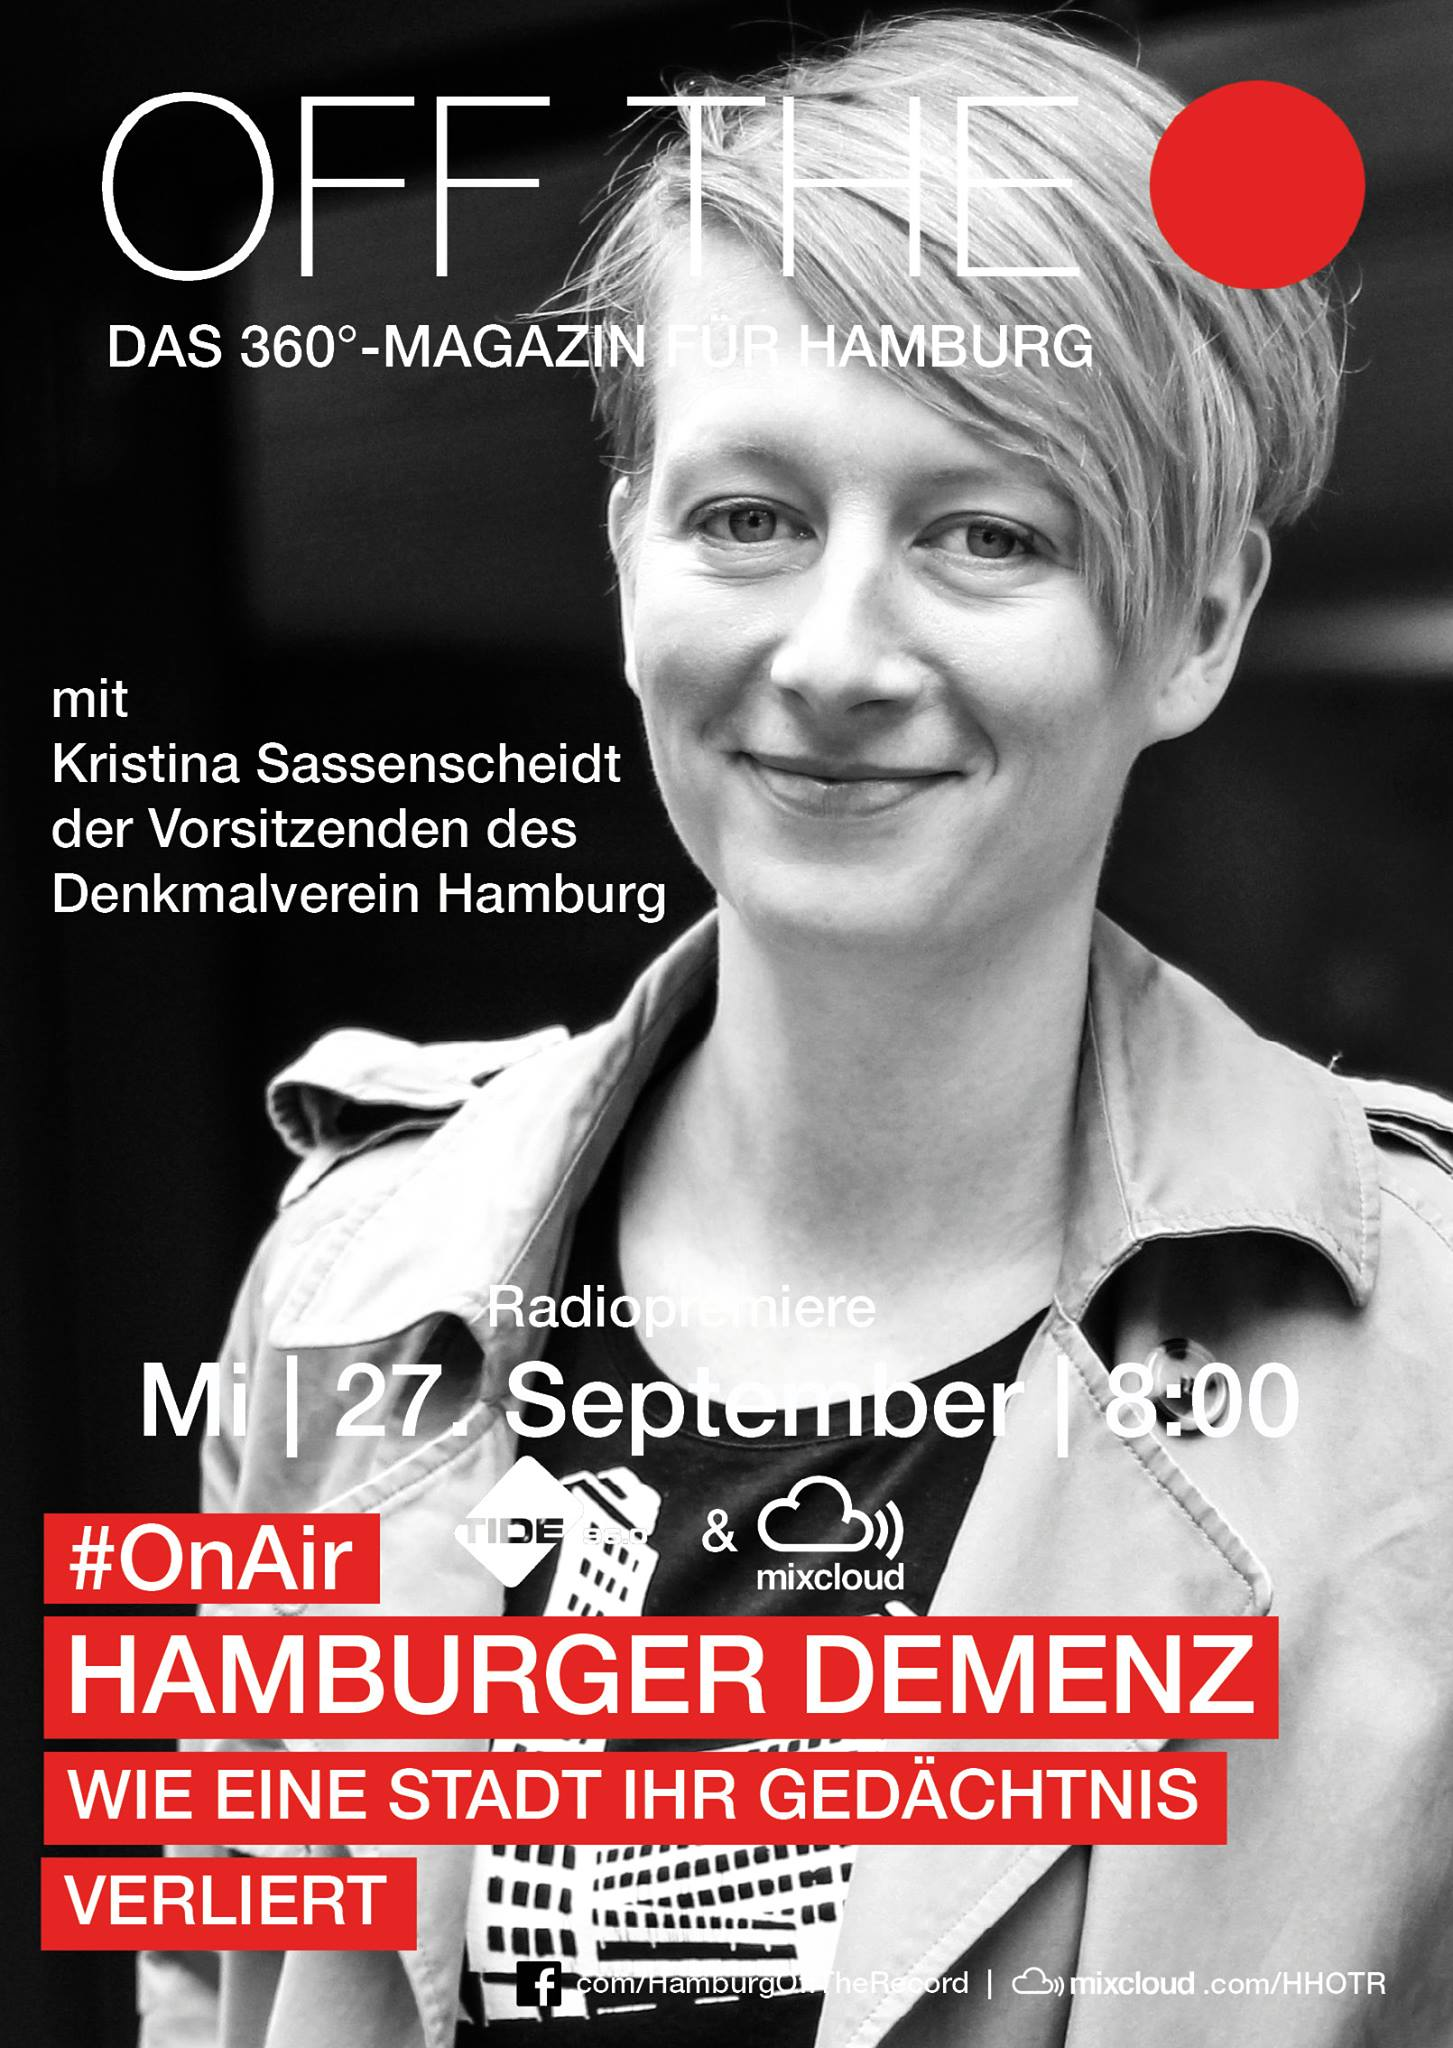 Off The Record OnAir Hamburger Demenz mit Kristina Sassenscheidt cover